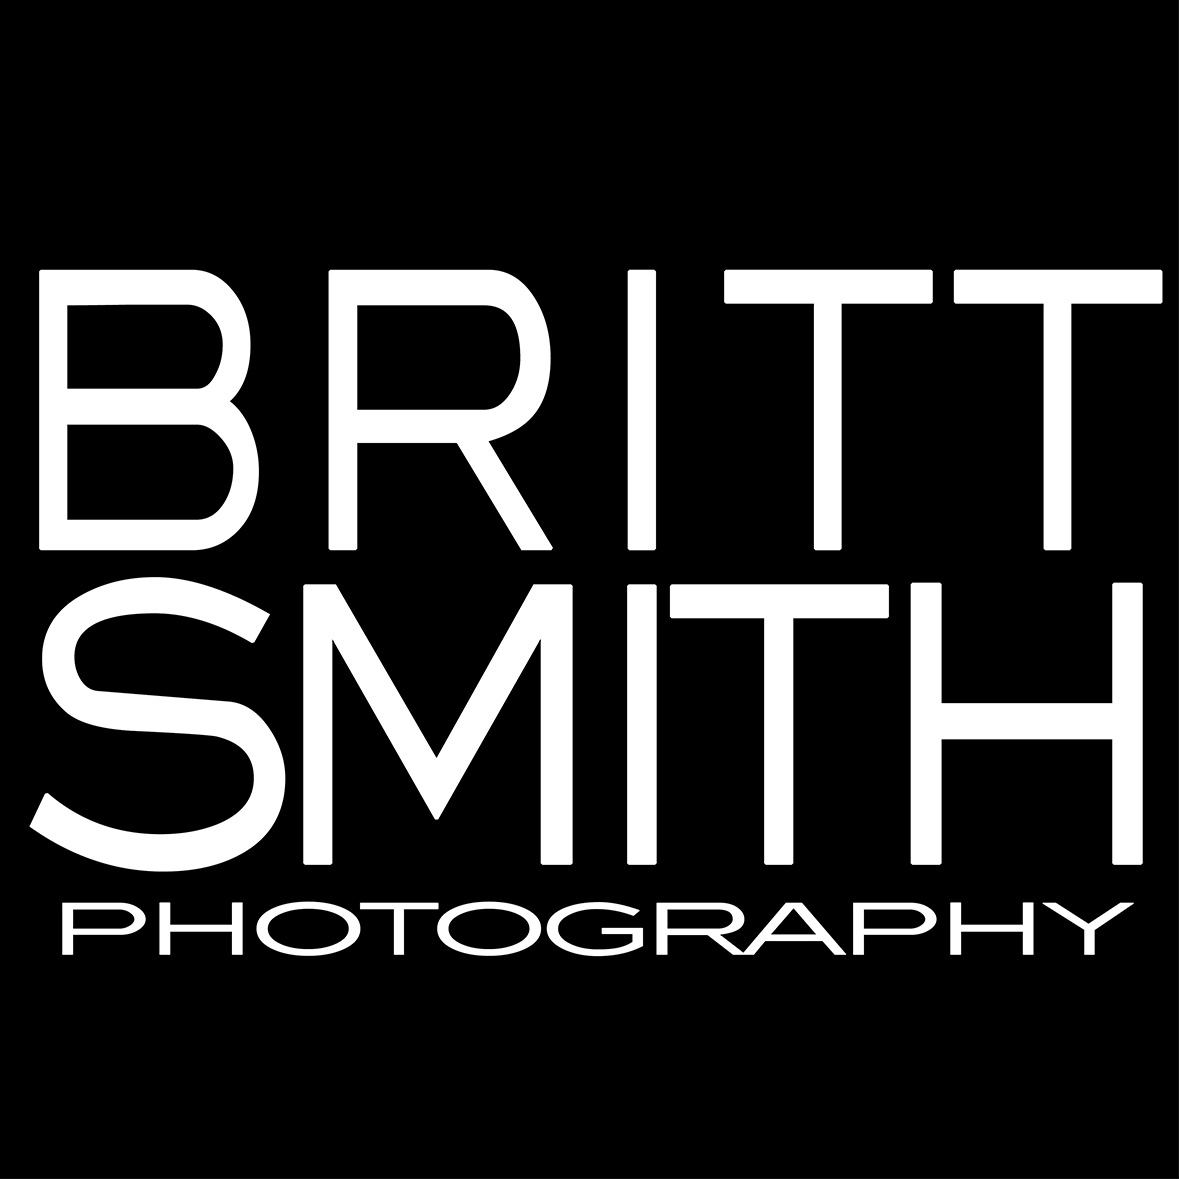 Britt Smith Photography